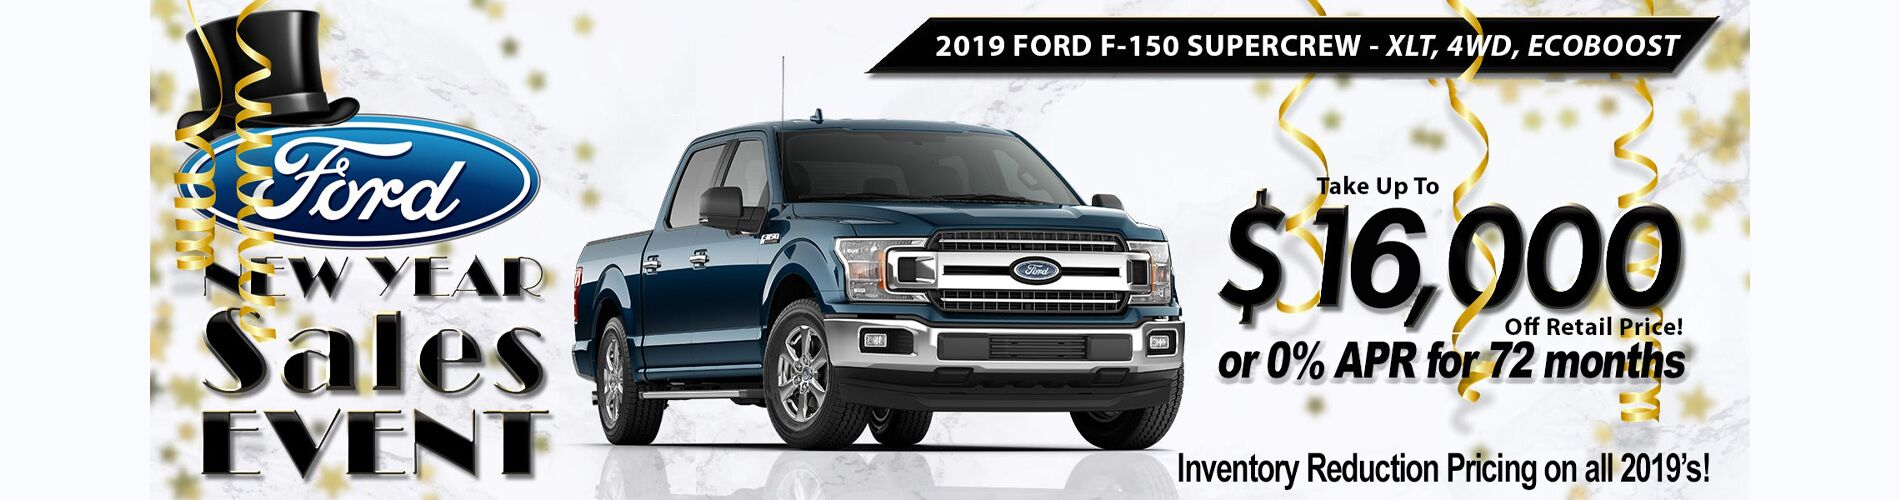 Ford Dealership Valdosta Ga >> Ford Dealership Valdosta Ga Used Cars Langdale Ford